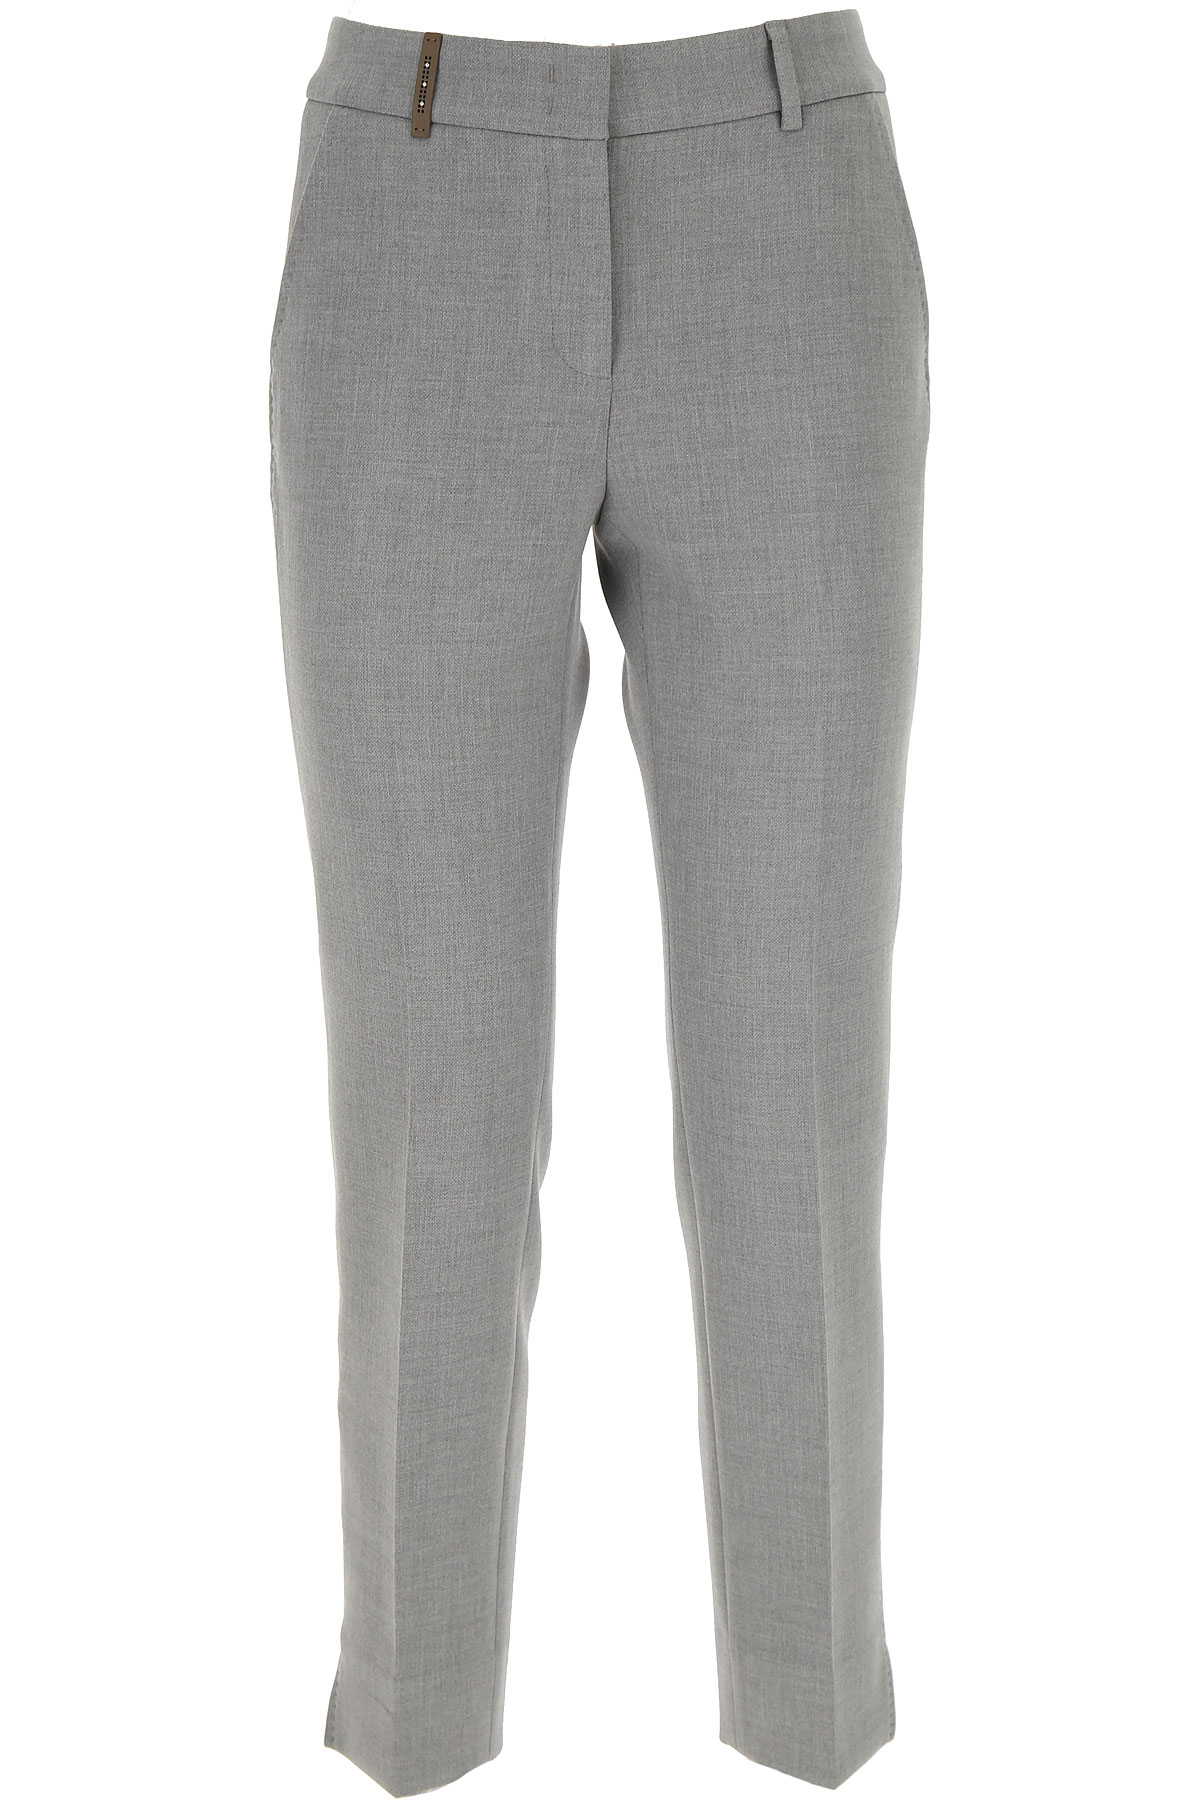 Peserico Pants for Women On Sale, Light Grey, polyester, 2019, 26 28 30 32